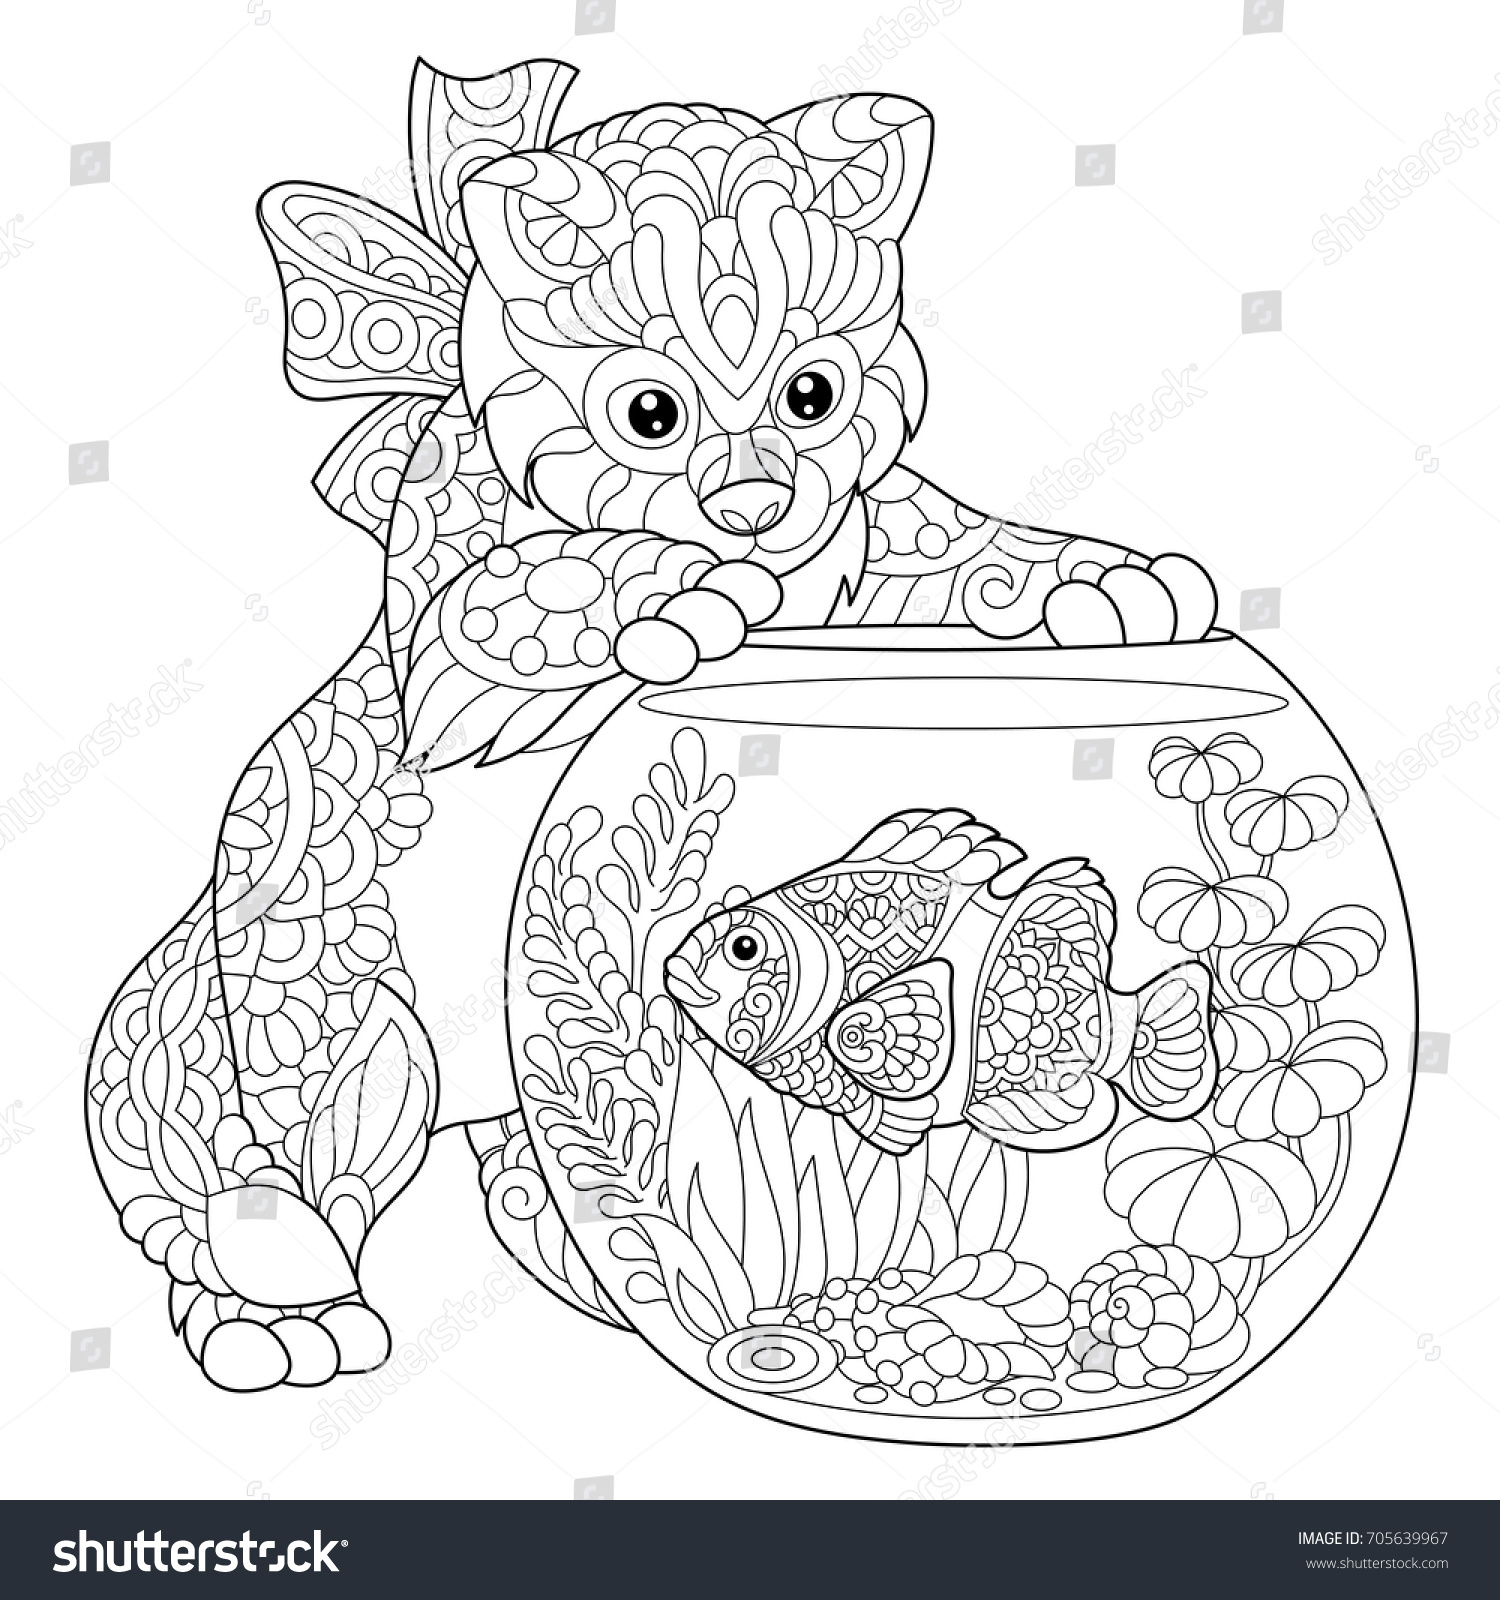 aquarium coloring page cool coloring book page kids outline